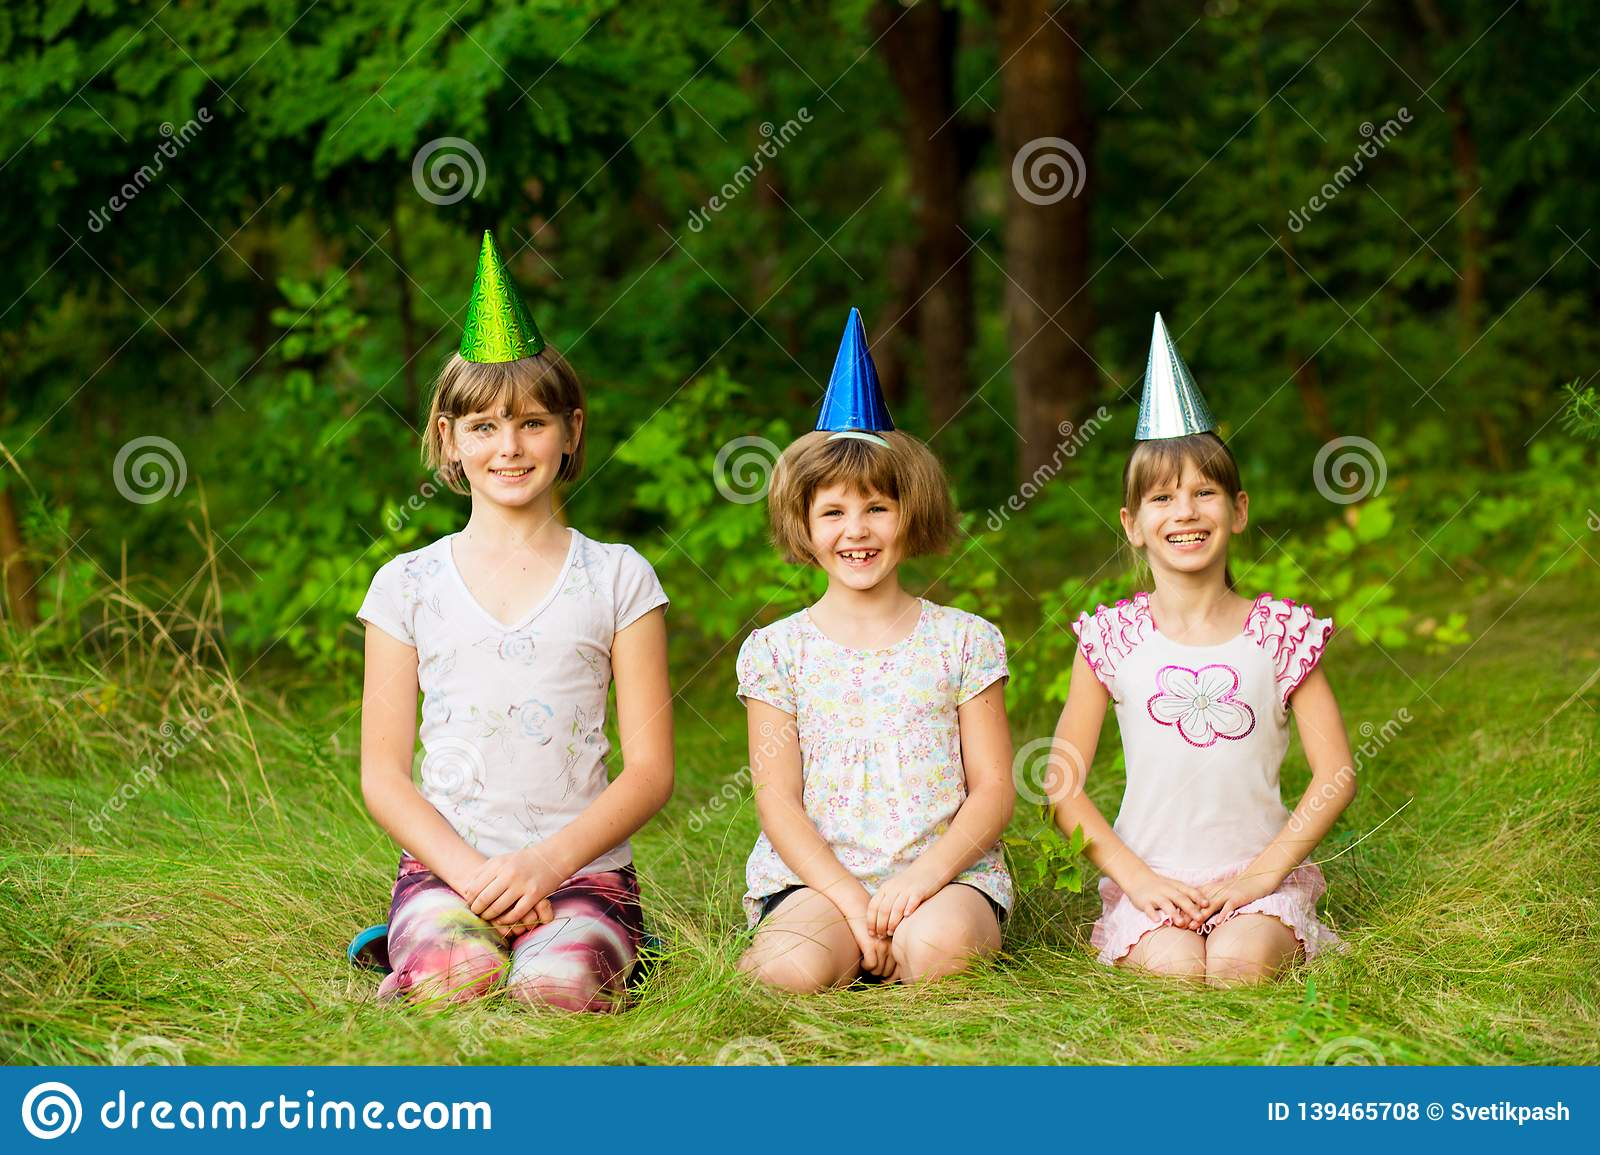 Three friendly children in festive cone caps, sit on grass, have fun together as celebrate birthday